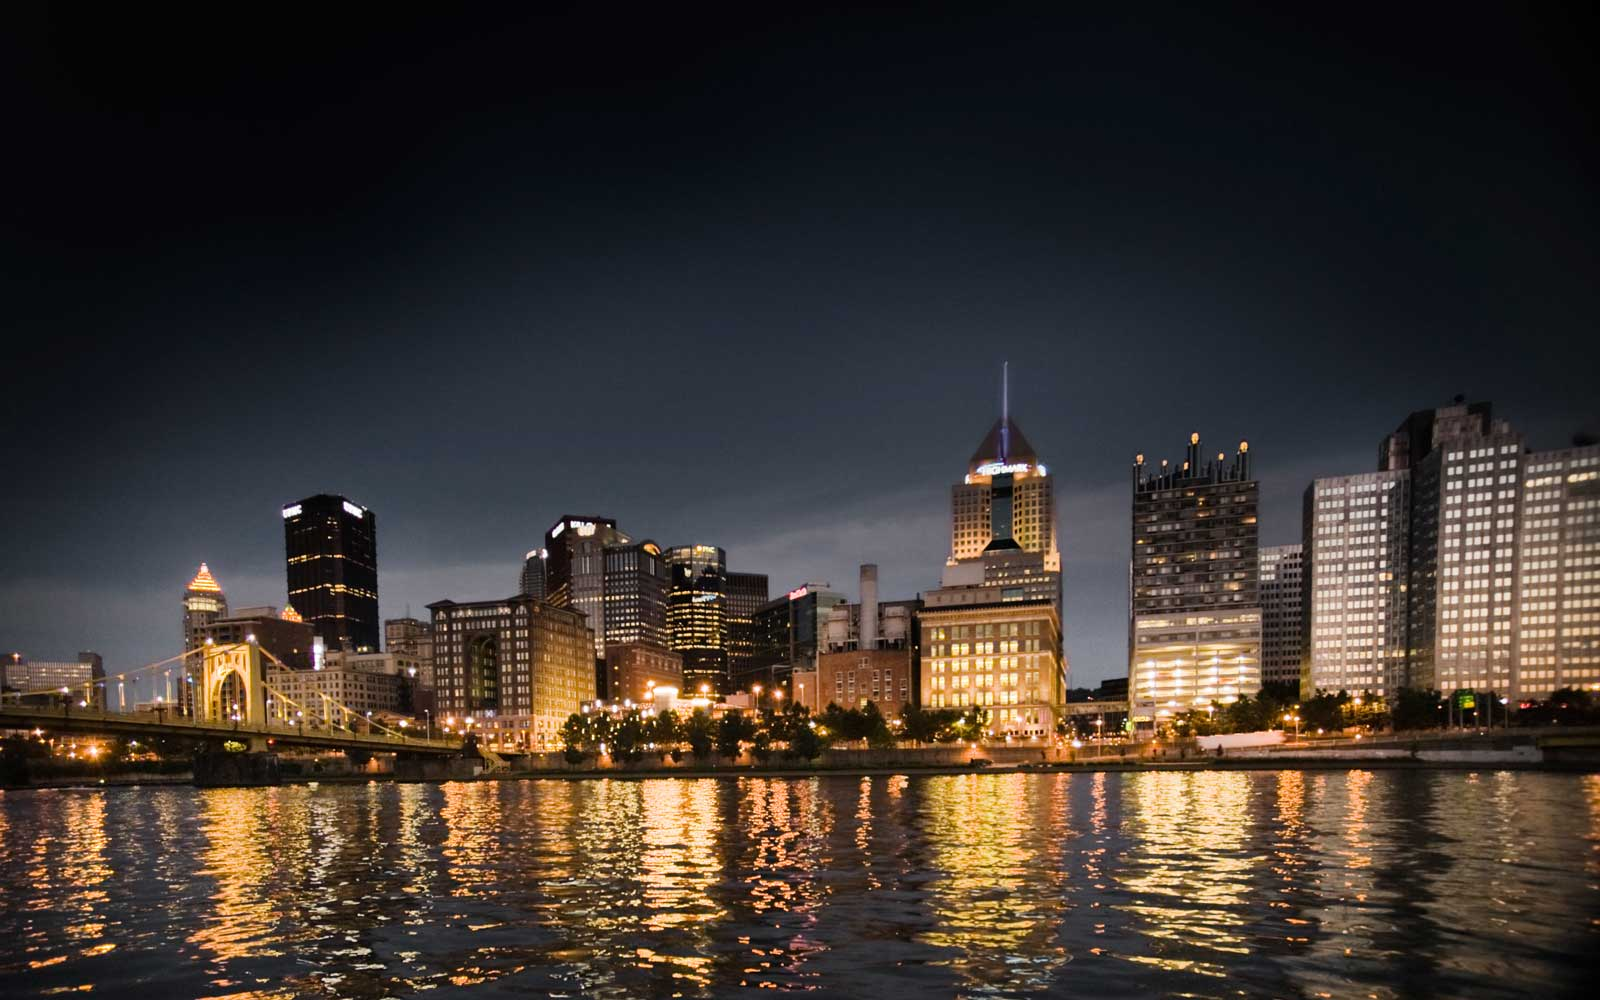 12. Pittsburgh, Pennsylvania